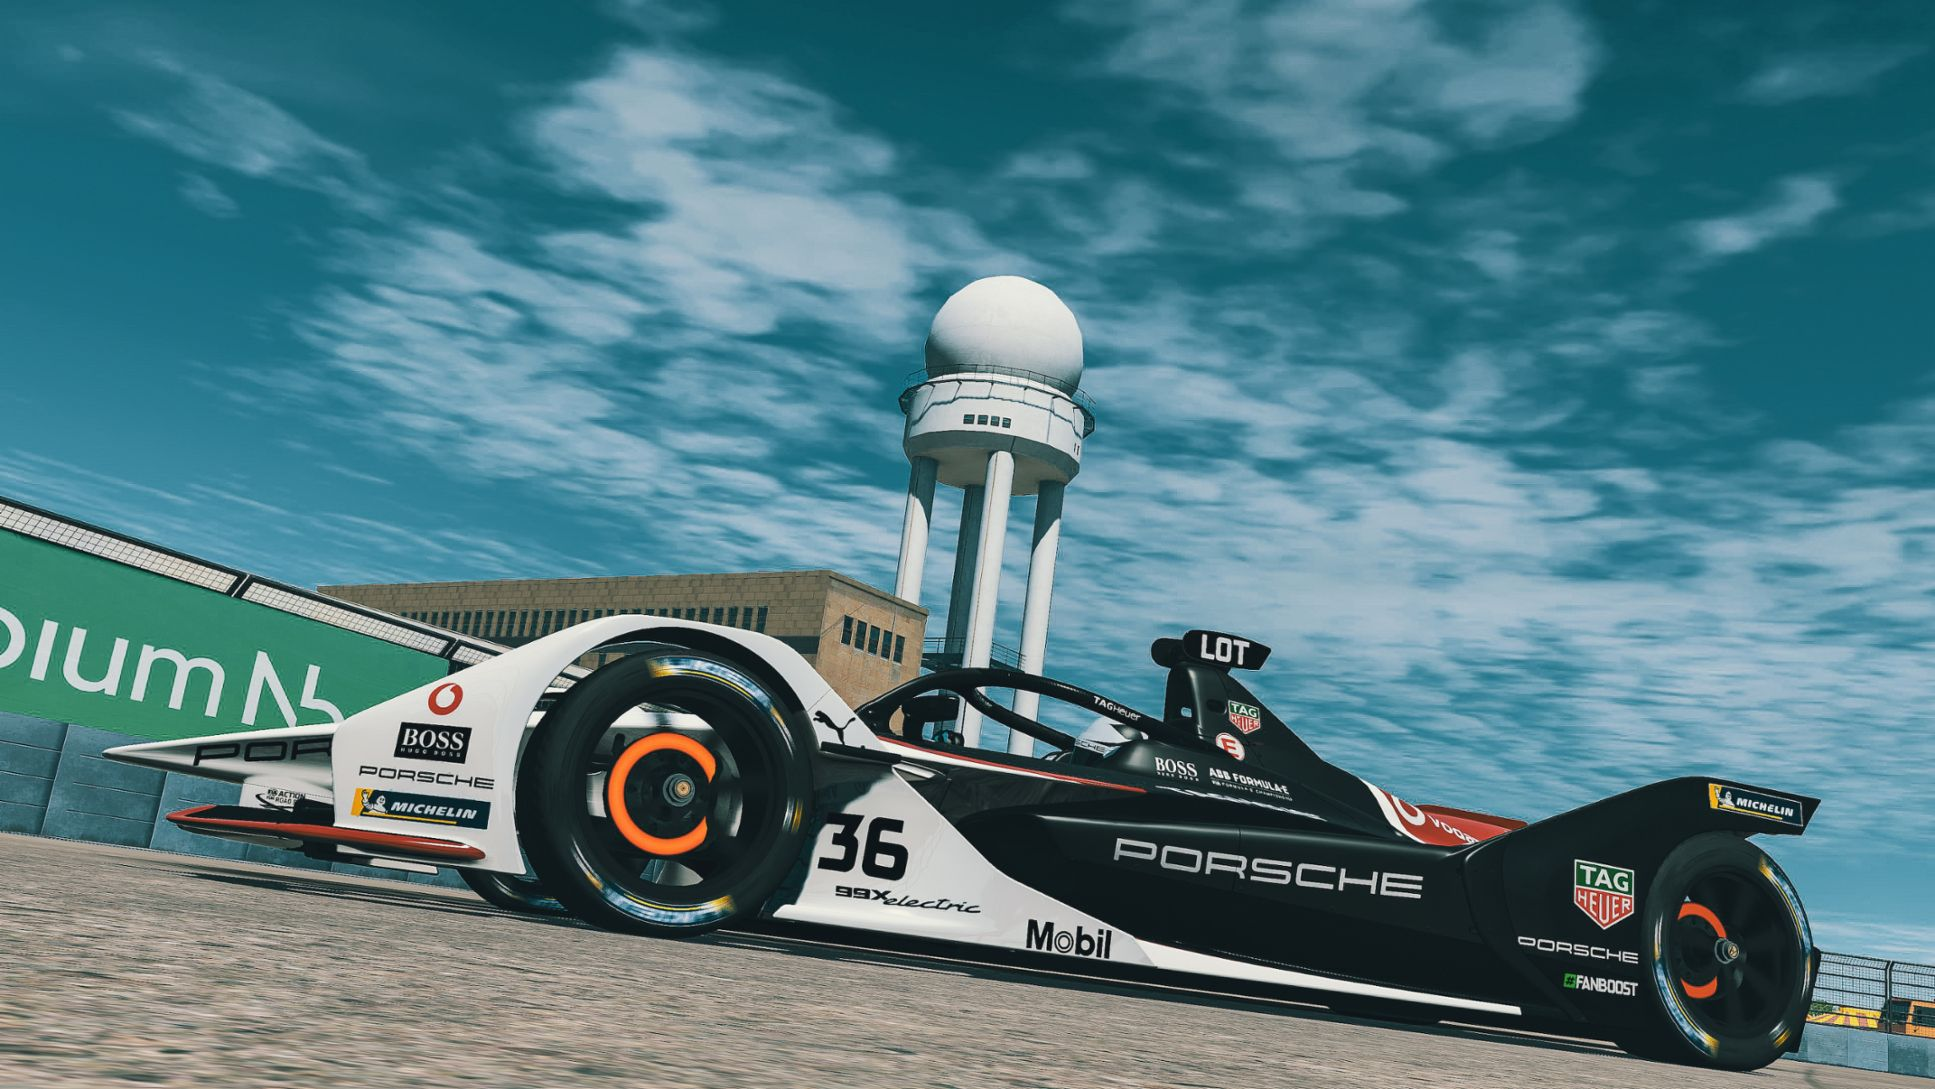 99X Electric, ABB FIA Formula E Championship, Race at Home Challenge, race 5, Berlin, 2020, Porsche AG